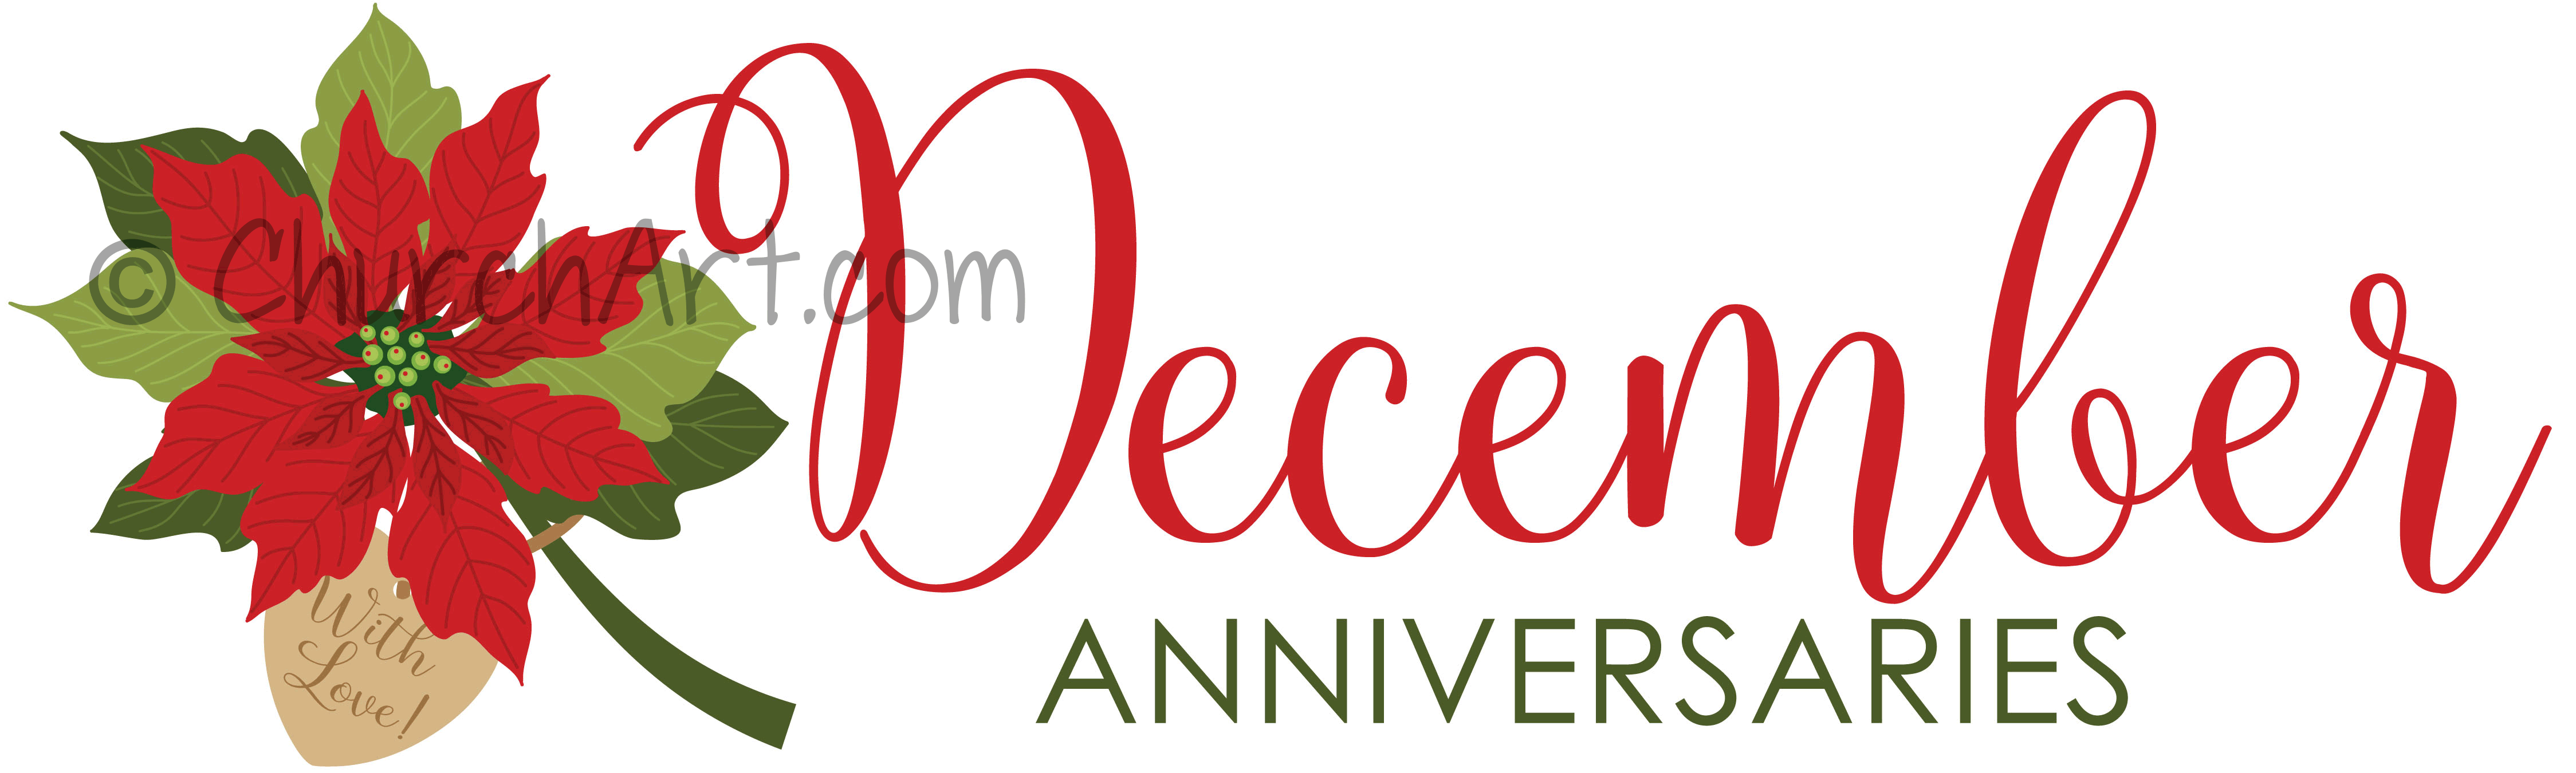 Clip art image for church anniversaries in the month of December